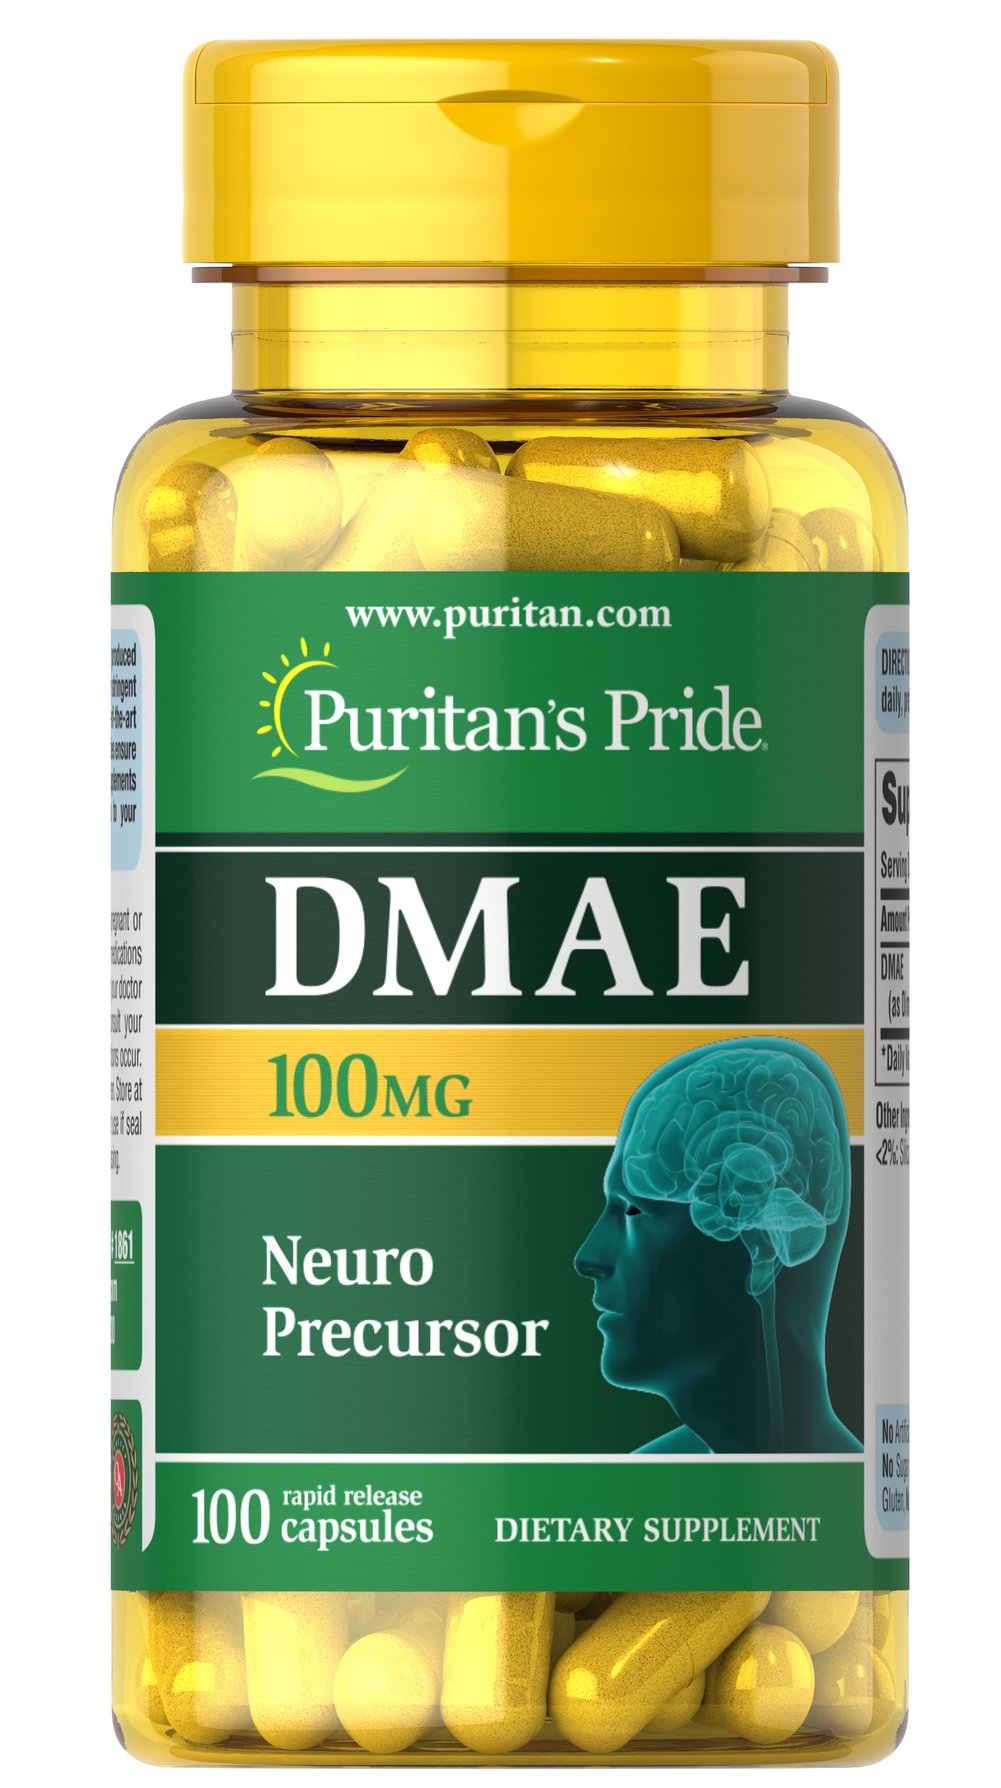 DMAE 100 mg <p>Often known as Dimethylaminoethanol, DMAE is a natural metabolite in the body. DMAE is related to the B factor choline and is a precursor to acetylcholine. Adults can take one capsule daily with a meal.</p> 100 Capsules 100 mg $12.29